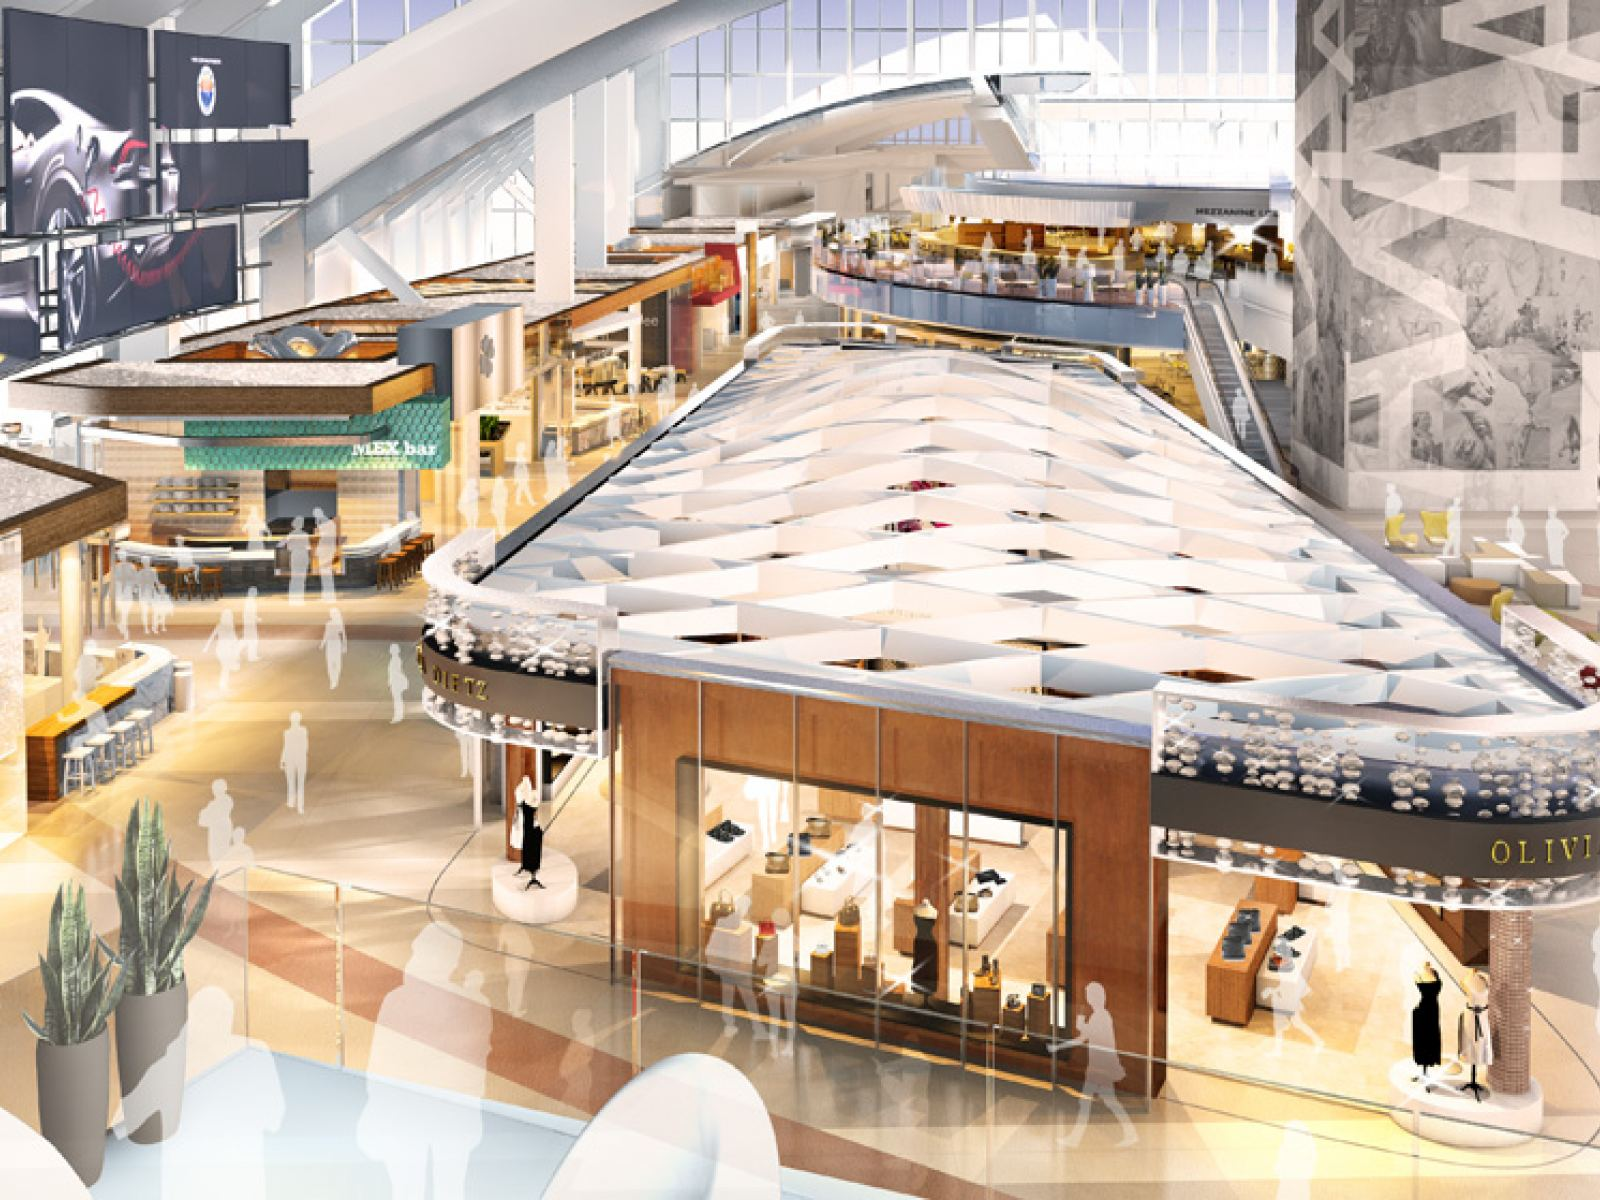 Main image for article titled LAX's Tom Bradley International Terminal: dineLA Foodie Recommended